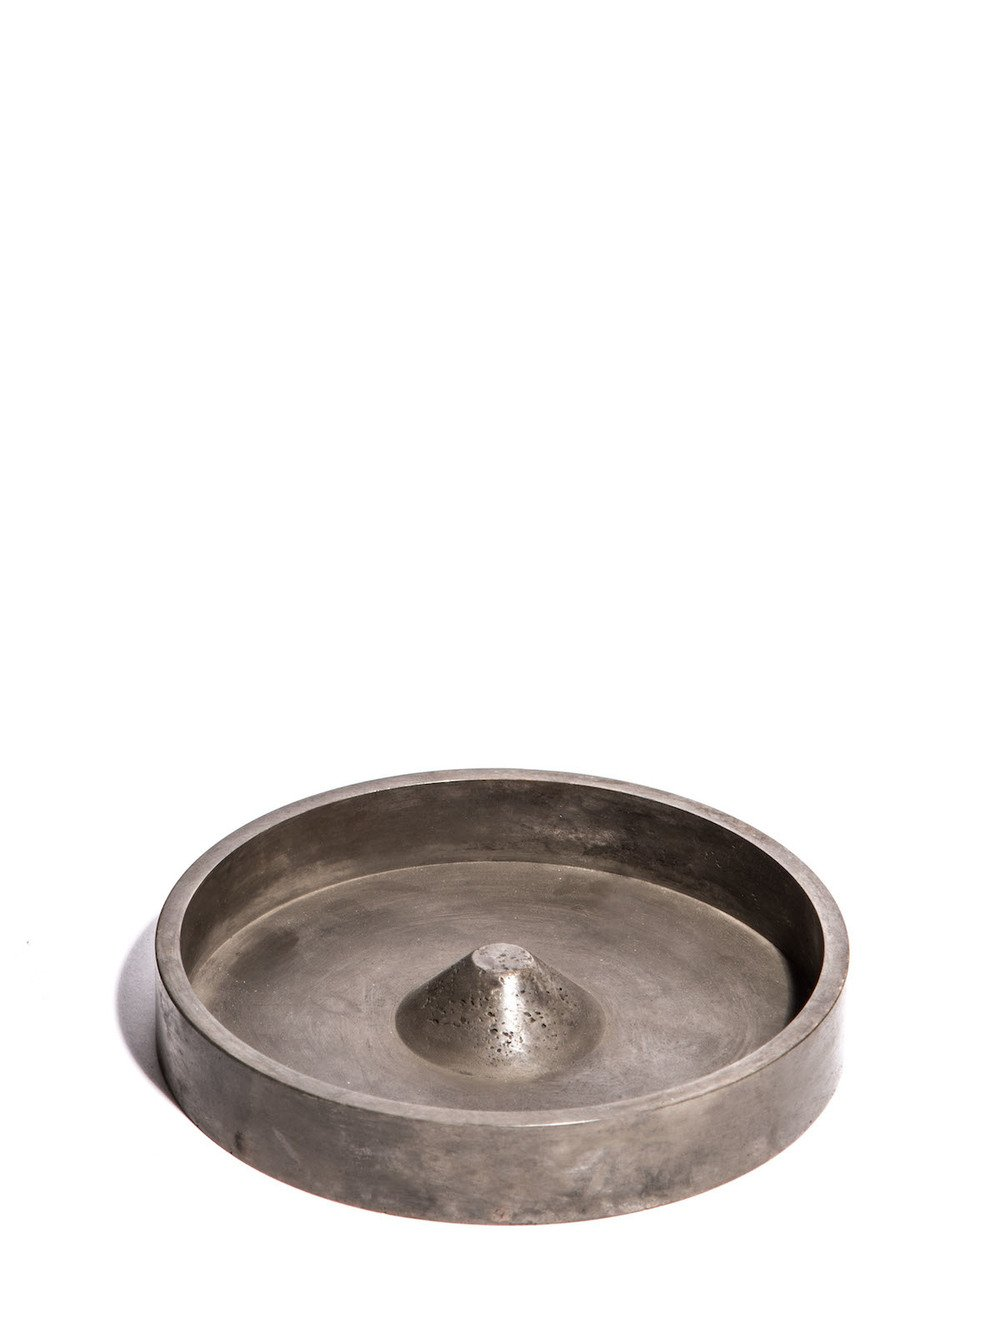 Original ashtray 1